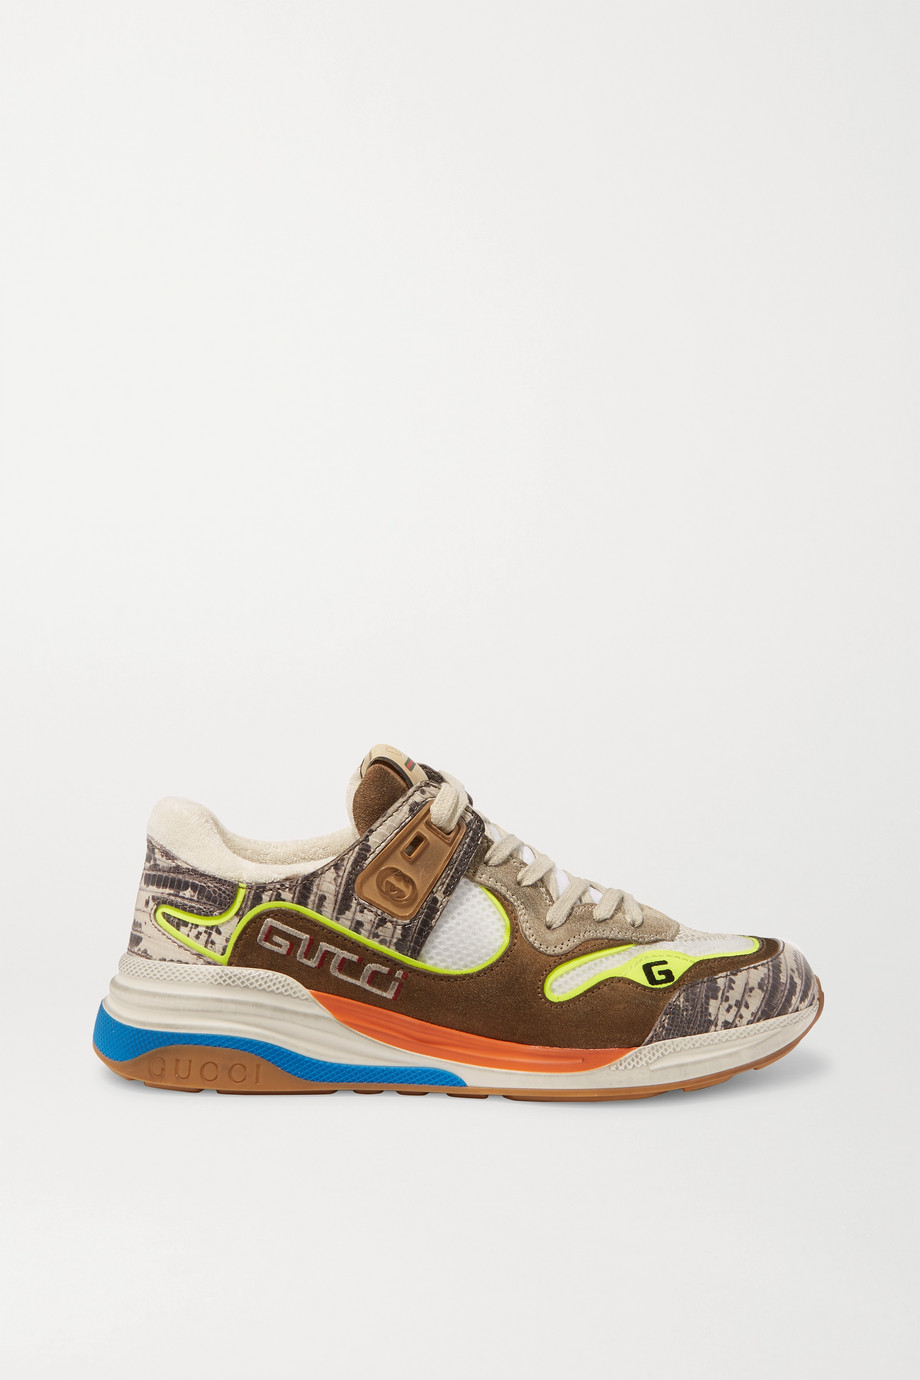 Gucci Ultrapace snake-effect leather, mesh and distressed suede sneakers